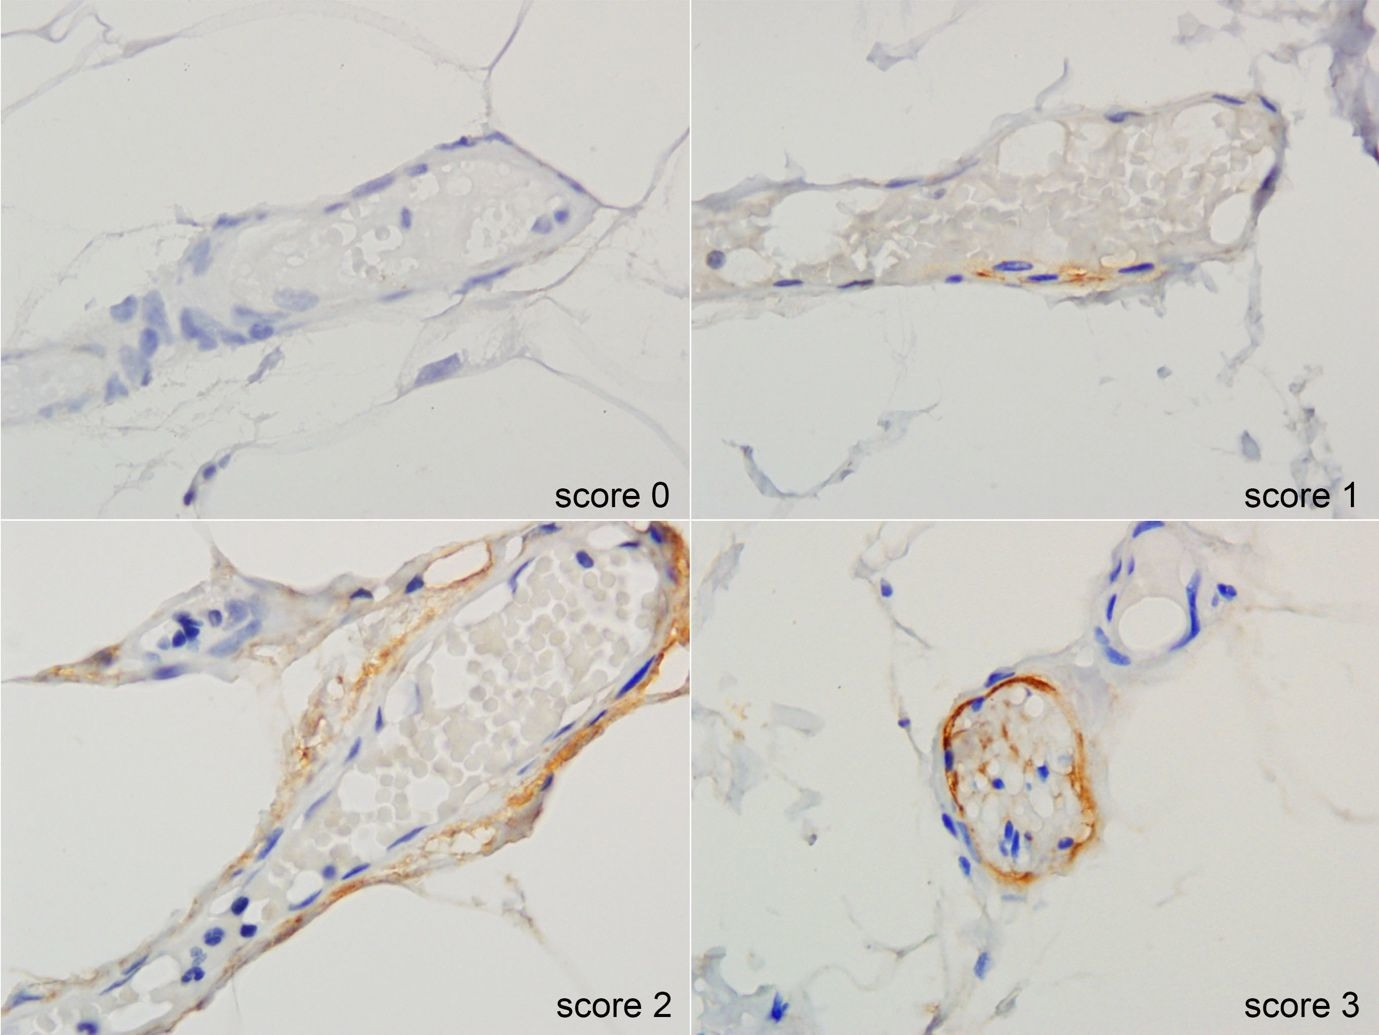 Scoring of IHC PAI-1 expression in vascular tissue.